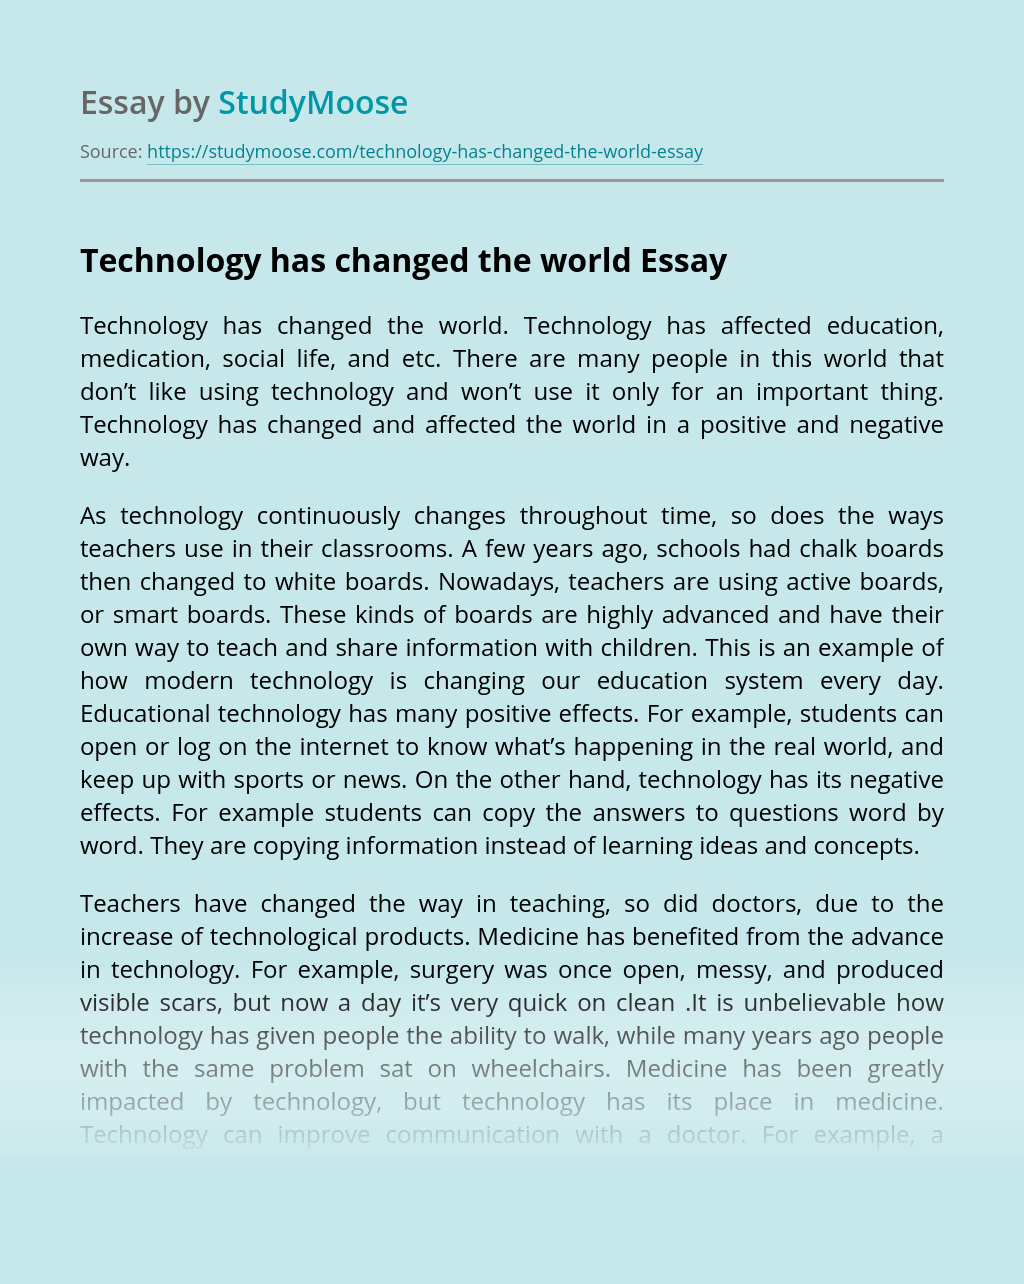 Technology has changed the world